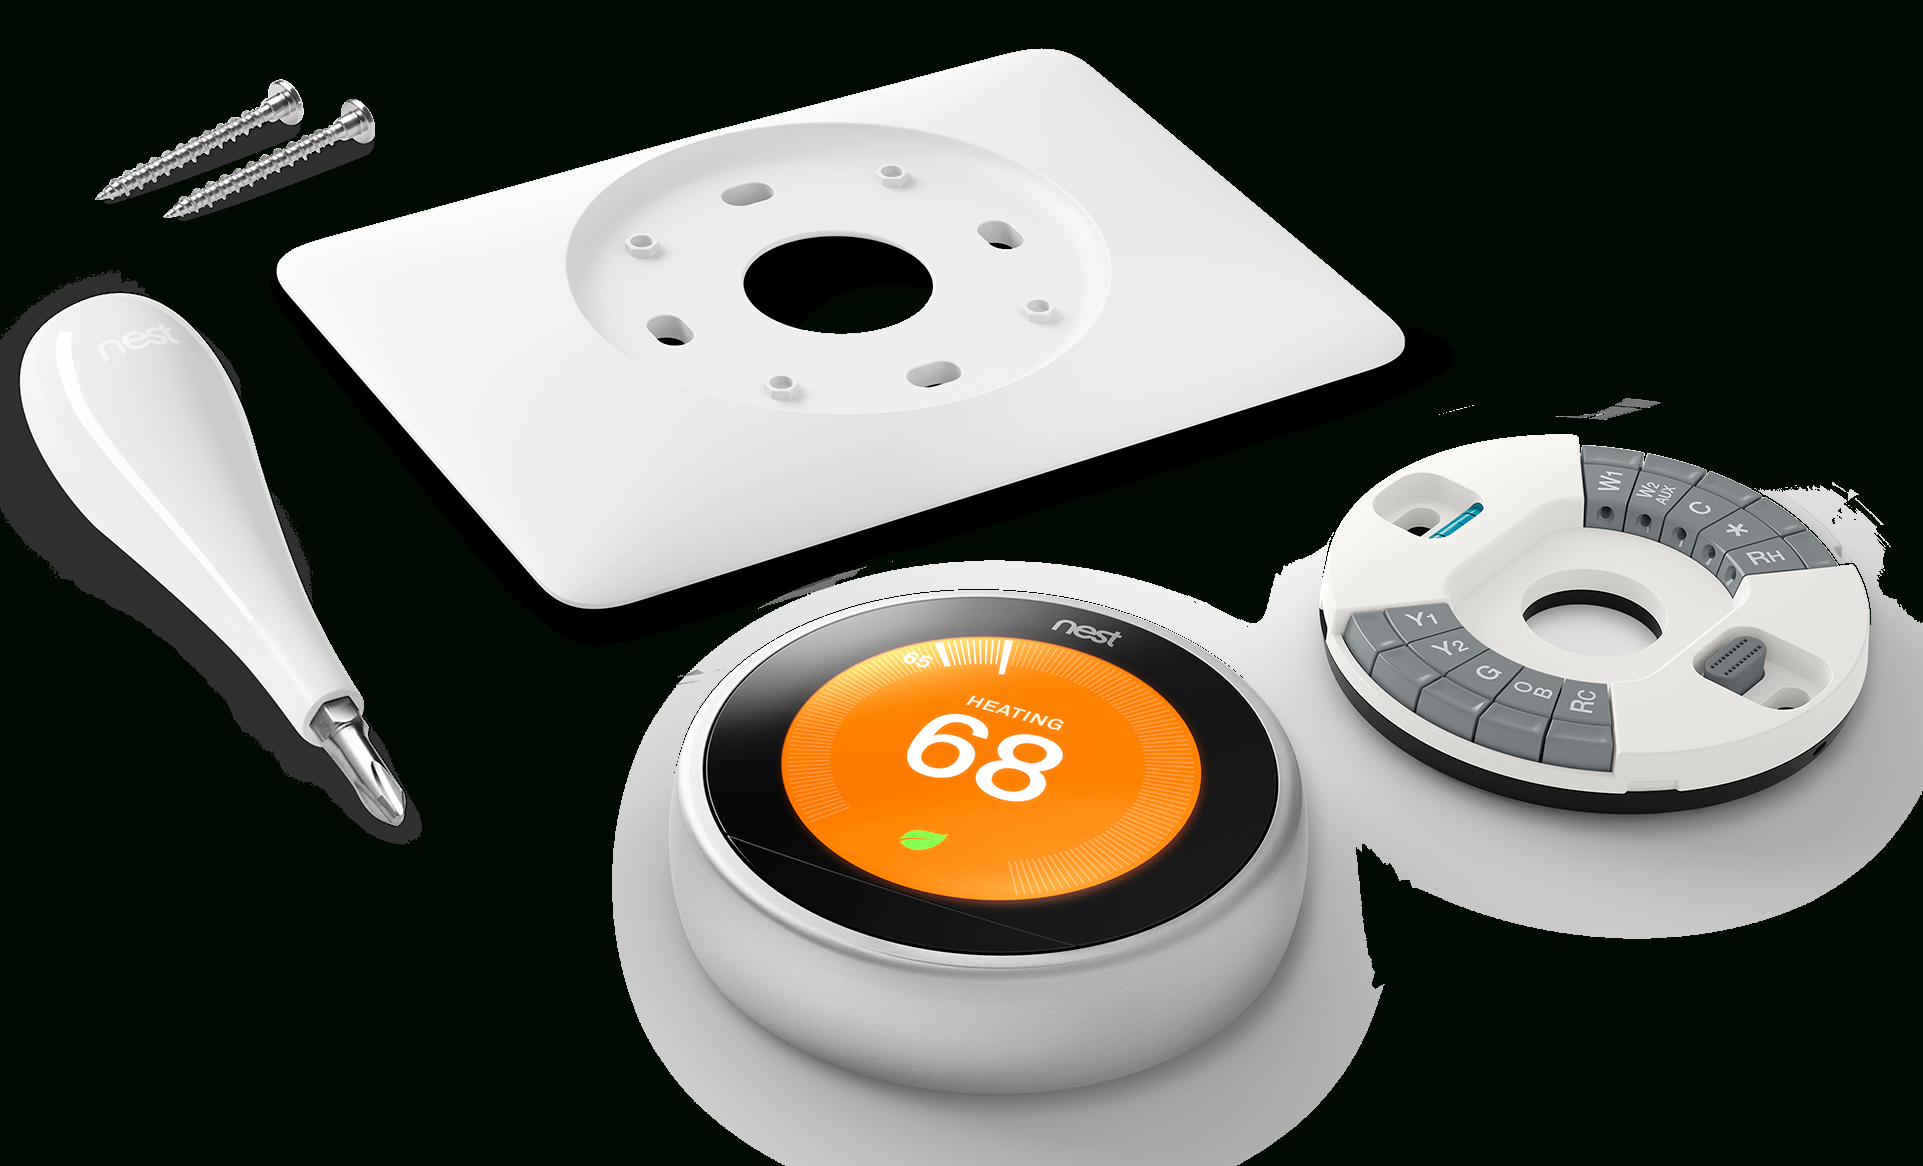 How To Install Your Nest Thermostat - Nest Gen 3 Wiring Diagram